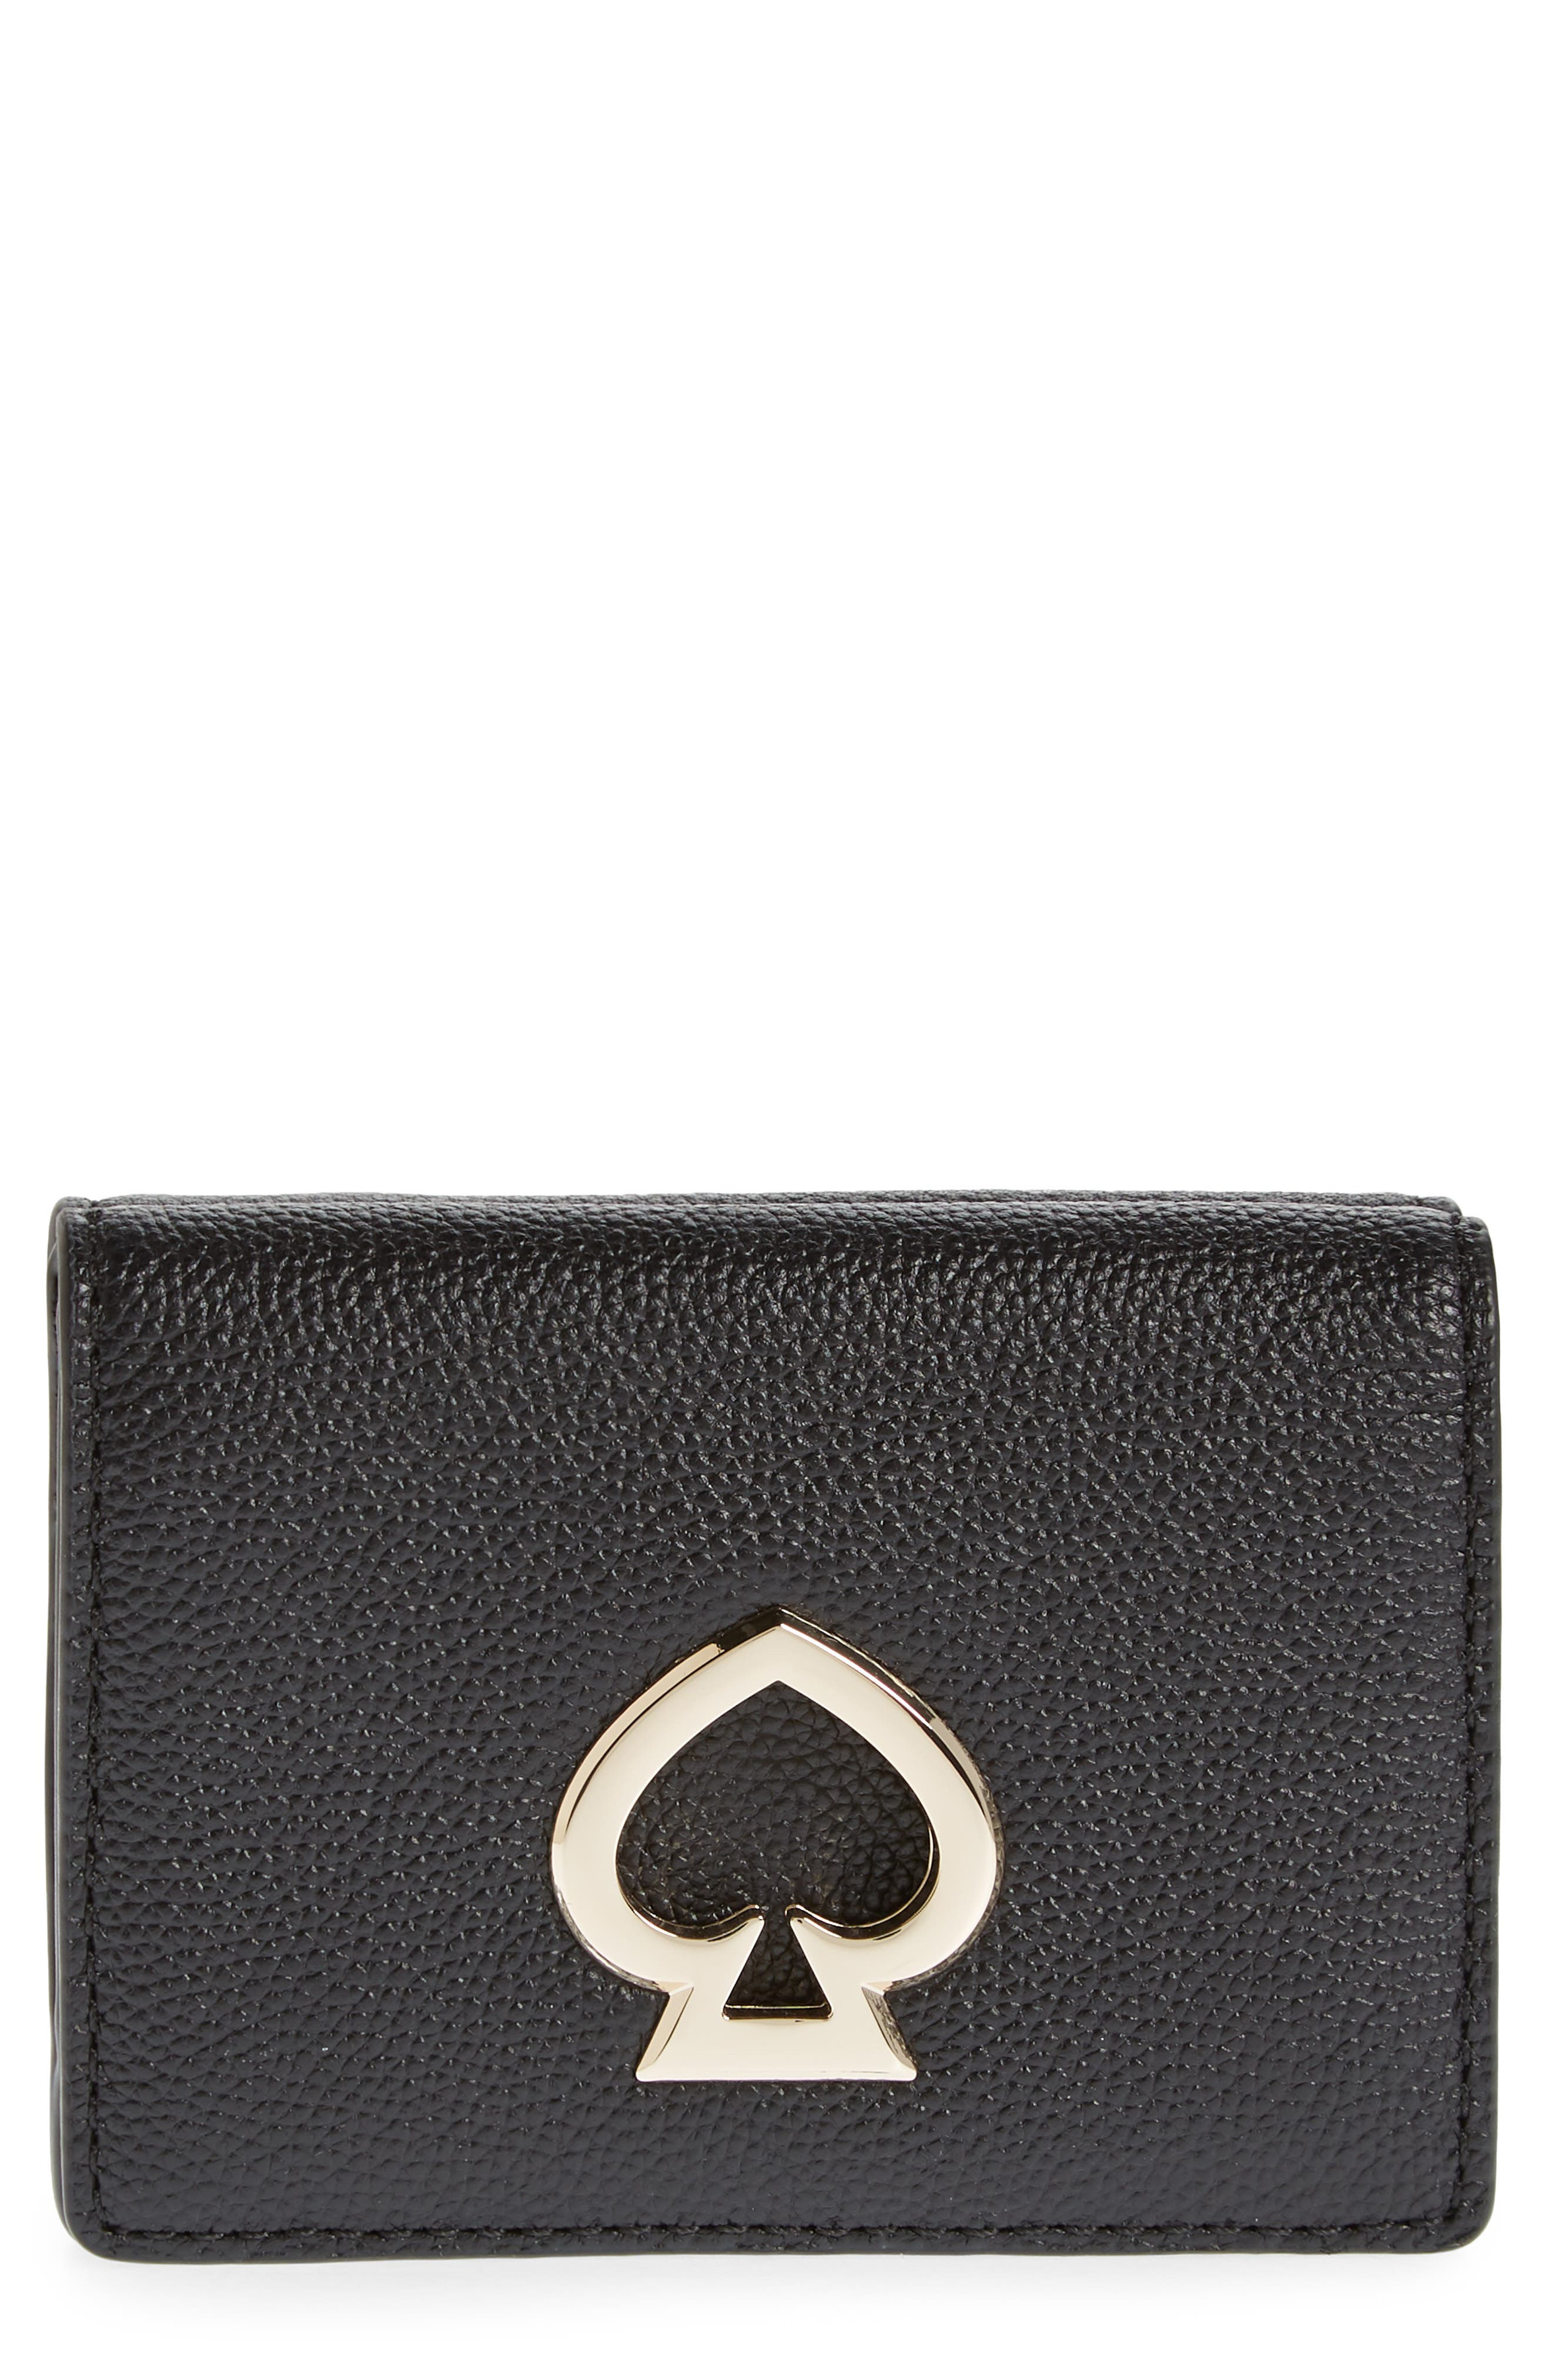 Image of kate spade new york mini suzy trifold leather wallet